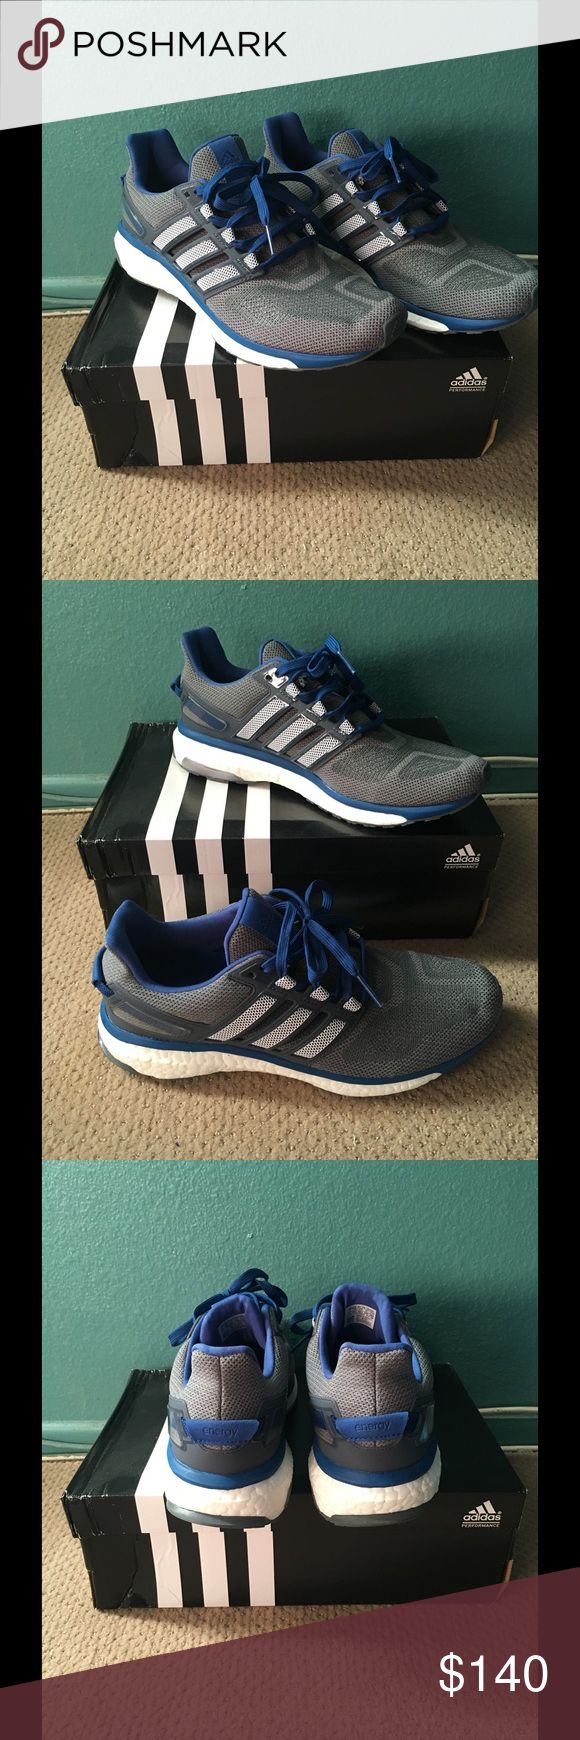 Adidas energy boost blue/gray ✅Brand New!!! 💥Adidas Energy Boost 💥Size: 11 💥Original Box 📦 Adidas Shoes Athletic Shoes